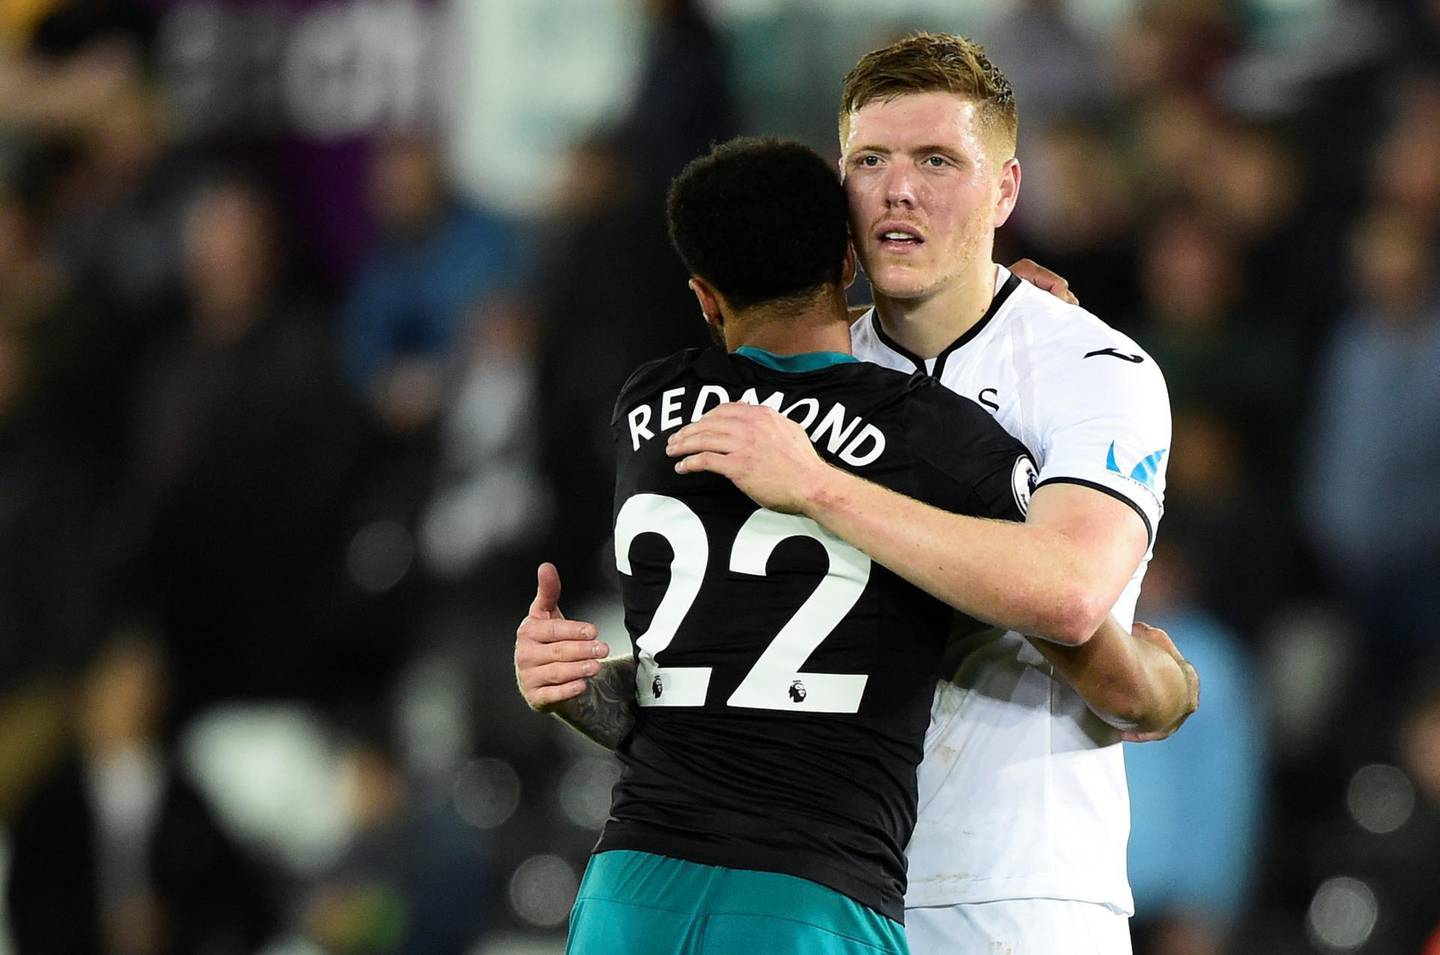 """Soccer Football - Premier League - Swansea City v Southampton - Liberty Stadium, Swansea, Britain - May 8, 2018   Swansea City's Alfie Mawson hugs Southampton's Nathan Redmond after the match   REUTERS/Rebecca Naden    EDITORIAL USE ONLY. No use with unauthorized audio, video, data, fixture lists, club/league logos or """"live"""" services. Online in-match use limited to 75 images, no video emulation. No use in betting, games or single club/league/player publications.  Please contact your account representative for further details."""